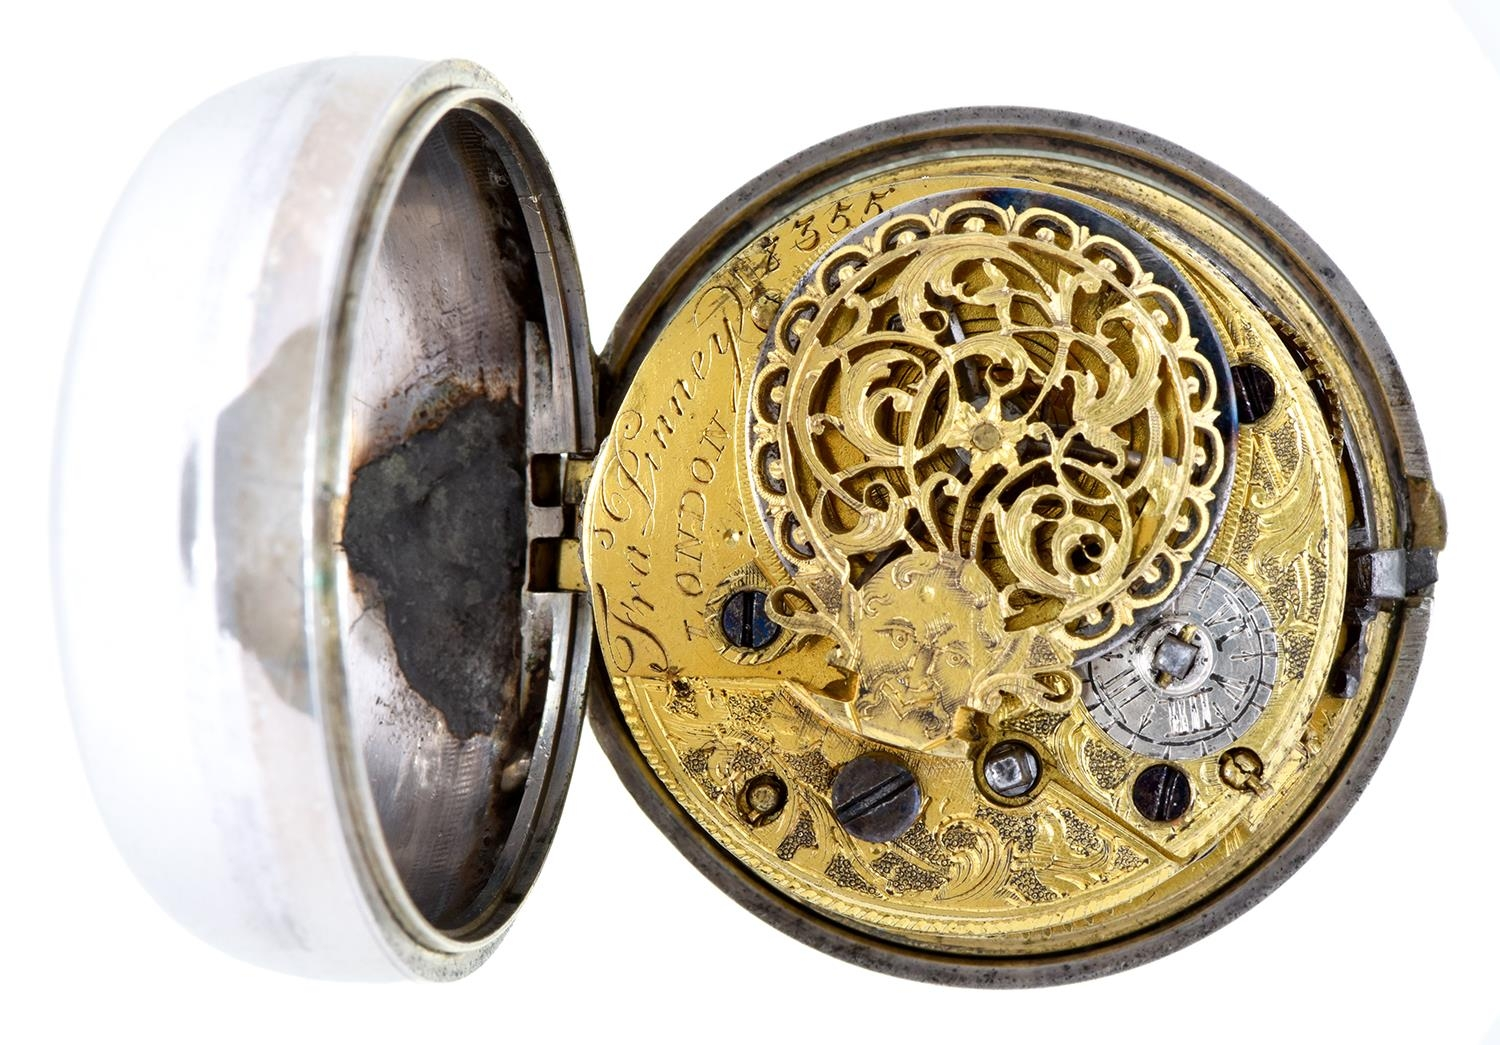 An English silver pair cased verge watch, Frans Pinney London, No 8355, with enamelled dial and - Image 3 of 5